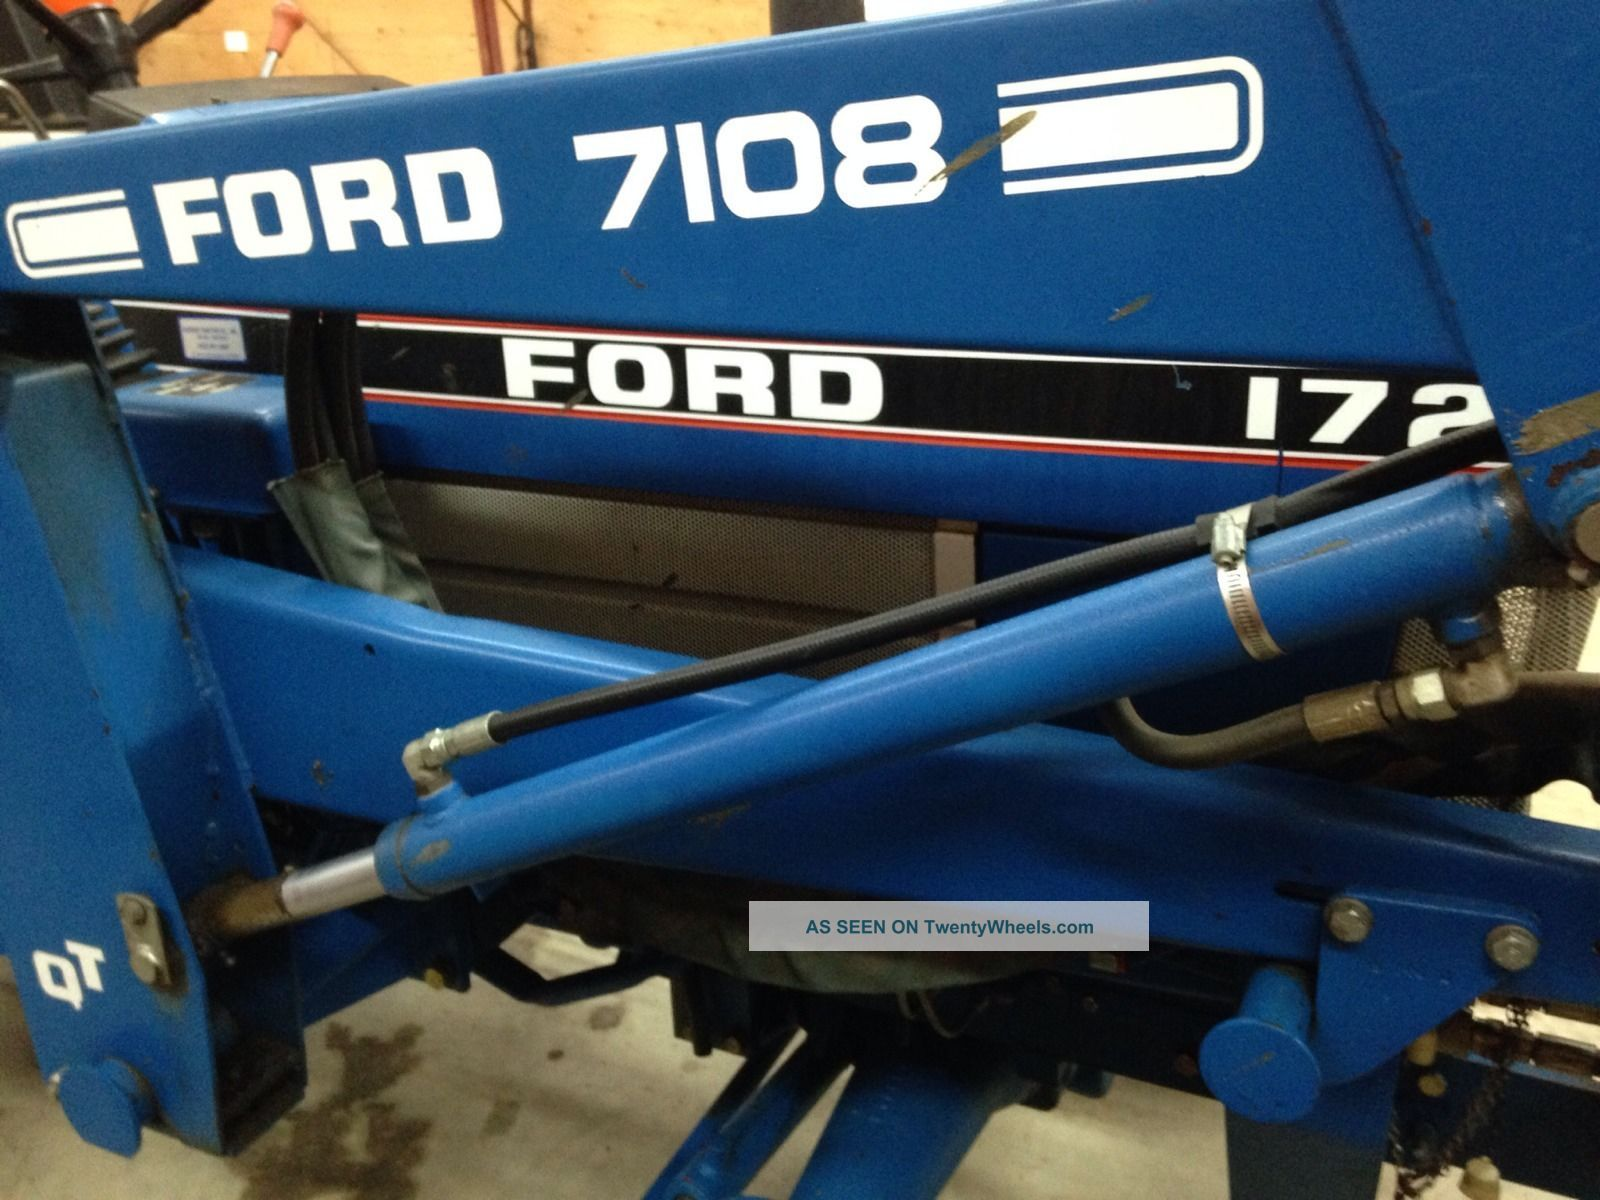 Ford 1720 photo - 2